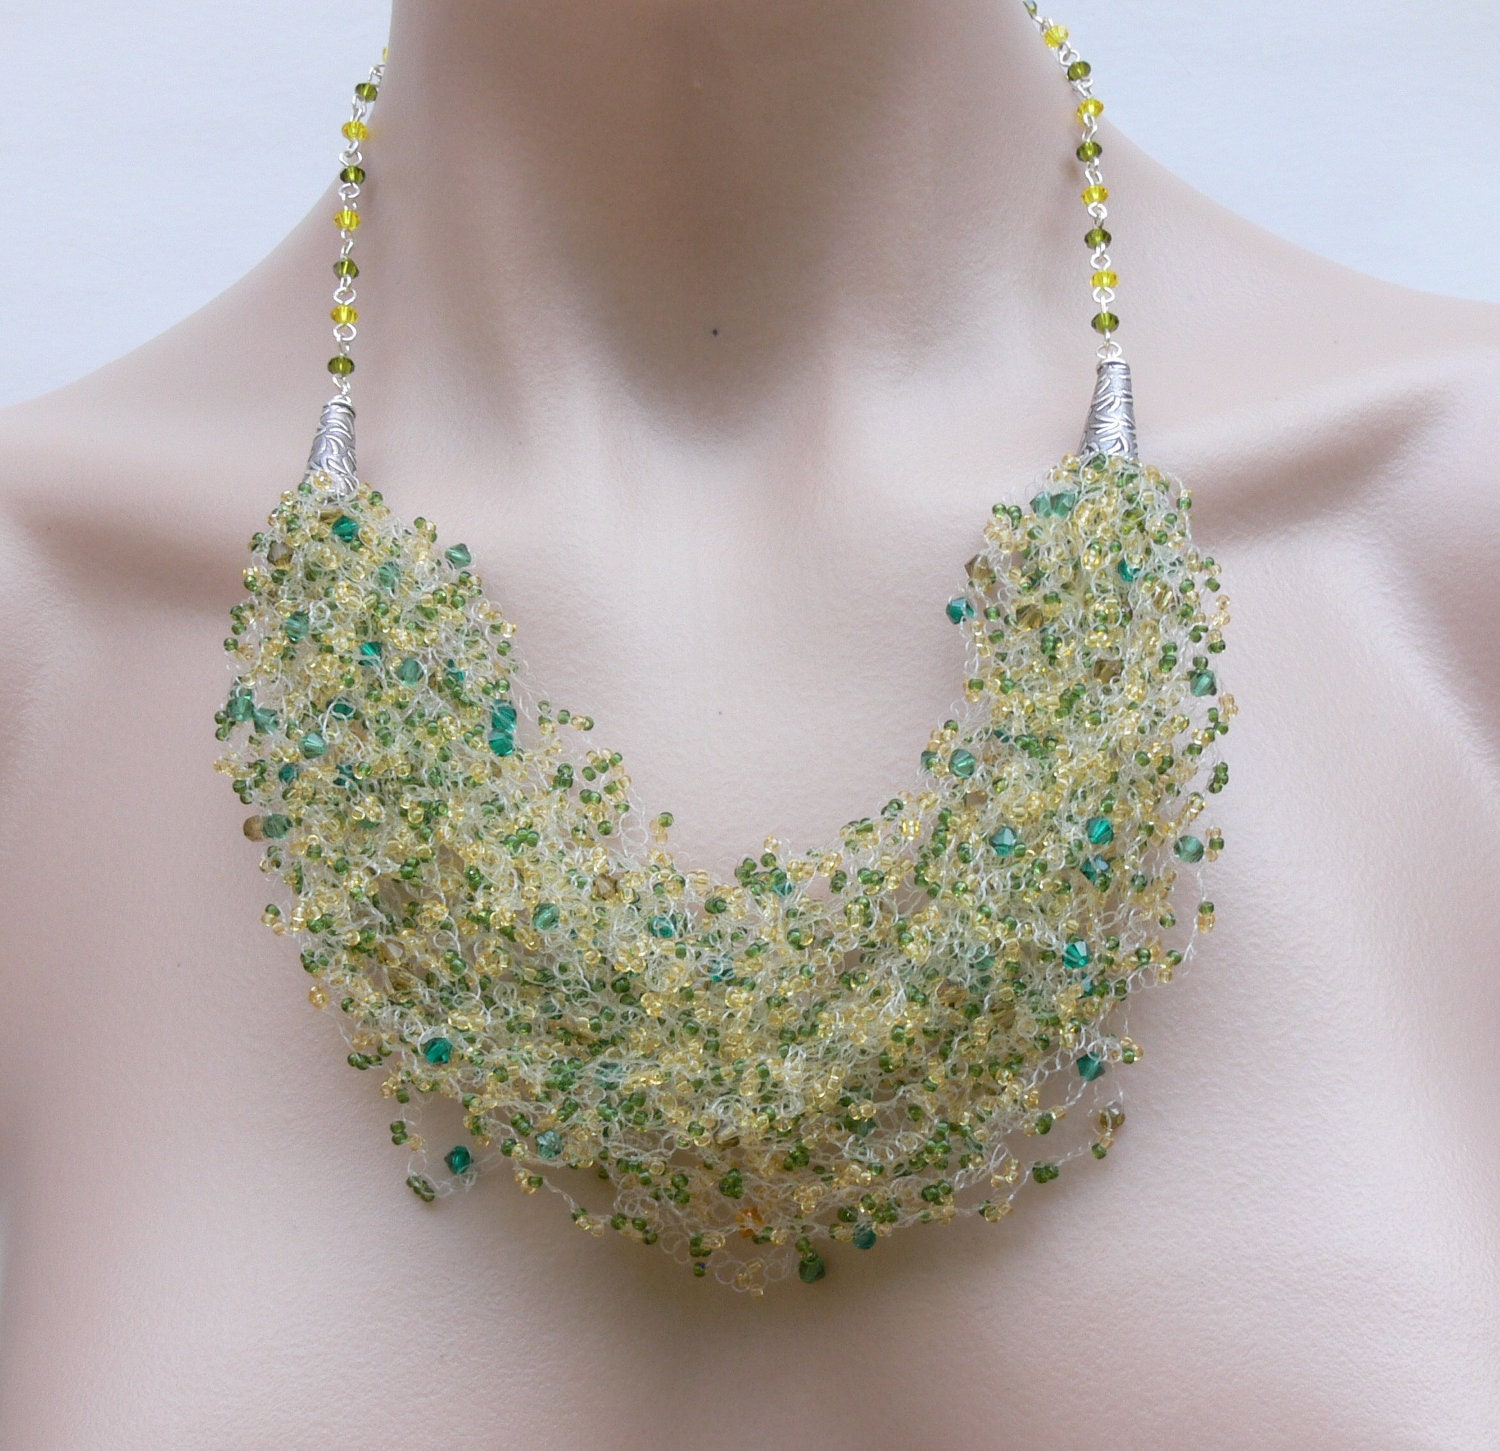 Necklace Beads: Crochet Necklace Crystal Necklace Bead Crochet Necklace